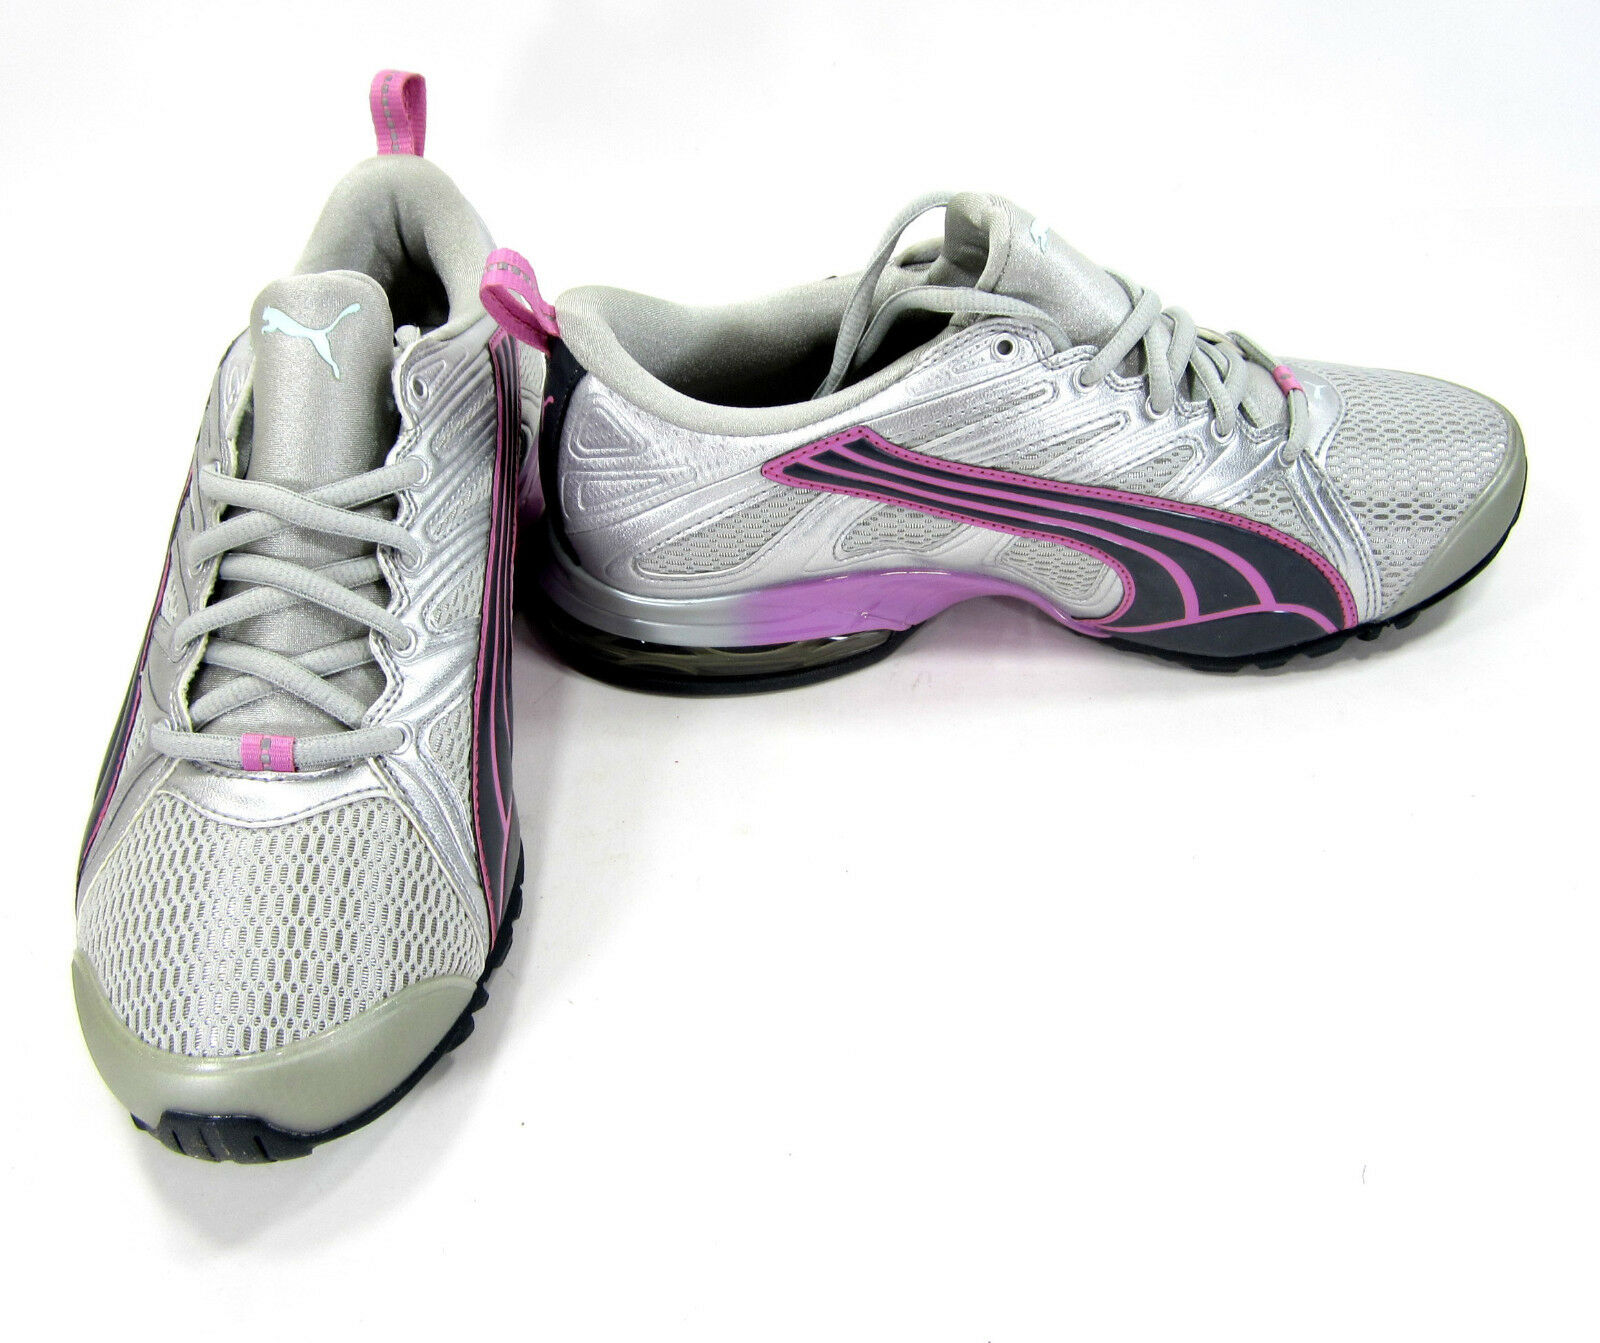 Puma Shoes Cell Volt M Running Silver/Shadow/Mauve Sneakers Sneakers Silver/Shadow/Mauve Womens 8.5 870b58